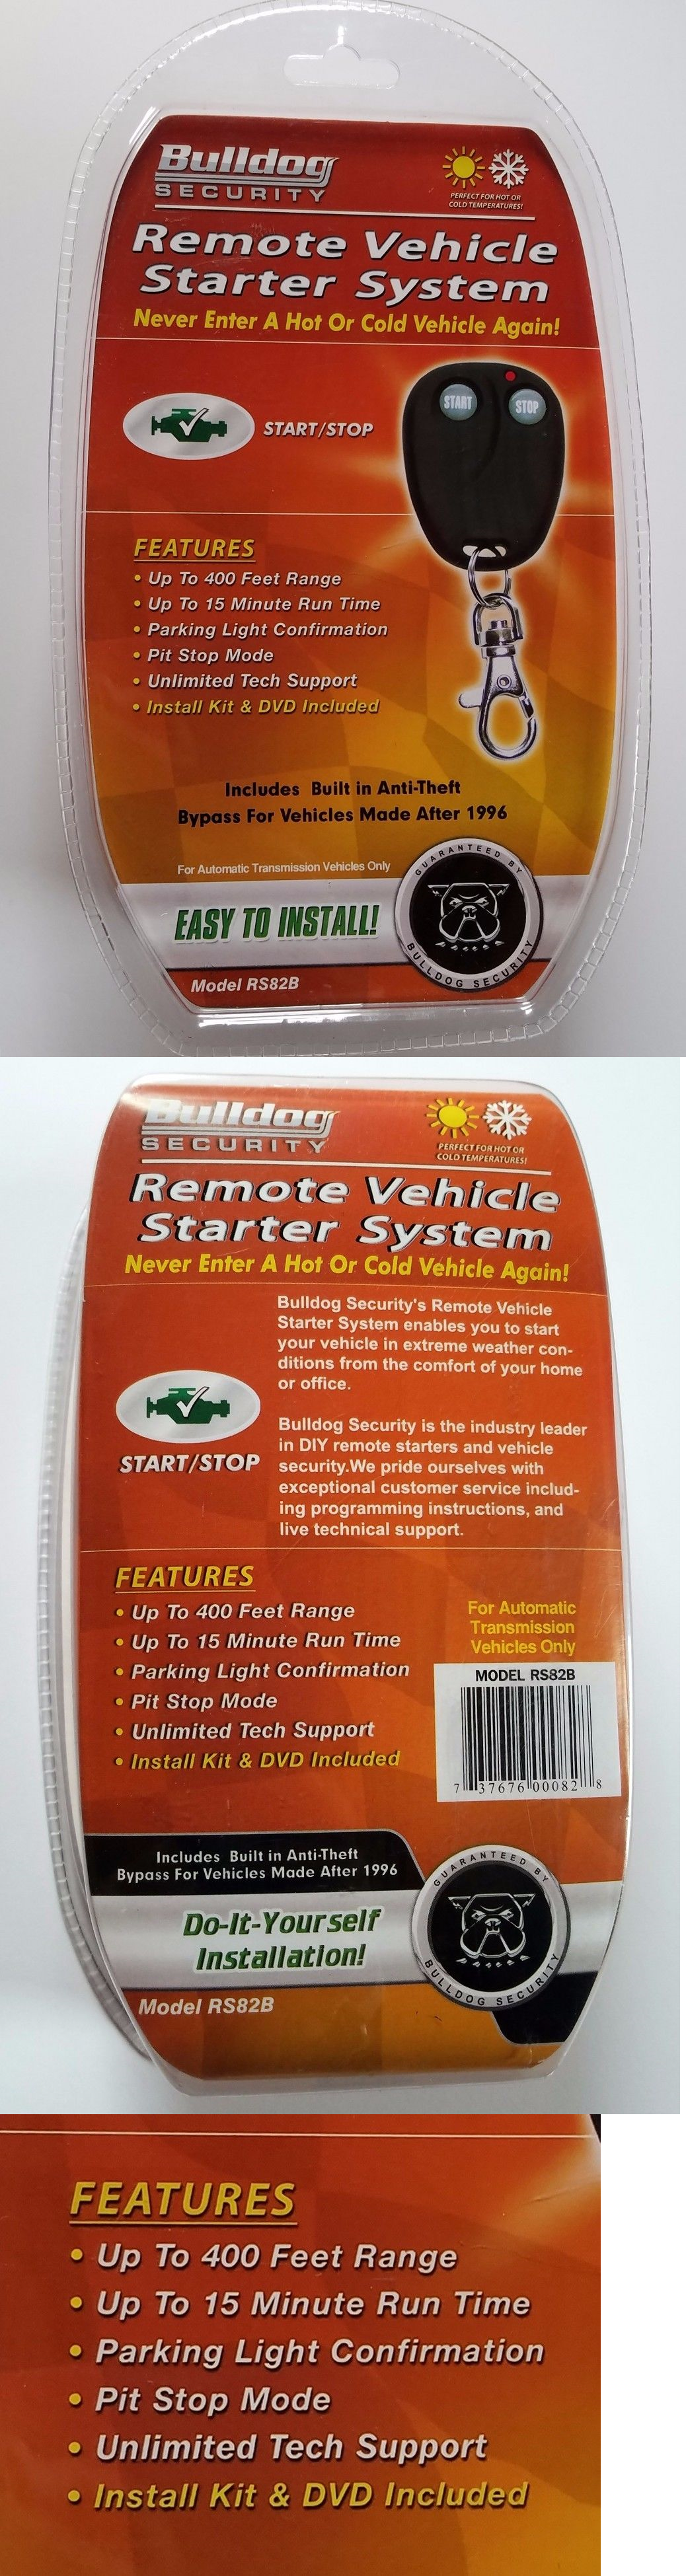 Awesome Bulldog Security Remote Starter With Keyless Entry Huge Super Switch Wiring Square Security Bulldog Ibanez Dimarzio Young Bulldog Alarms Wiring BrownOff Grid Solar Wiring Diagram Bulldog Security Remote Vehicle Starter System Model RS82 New In ..